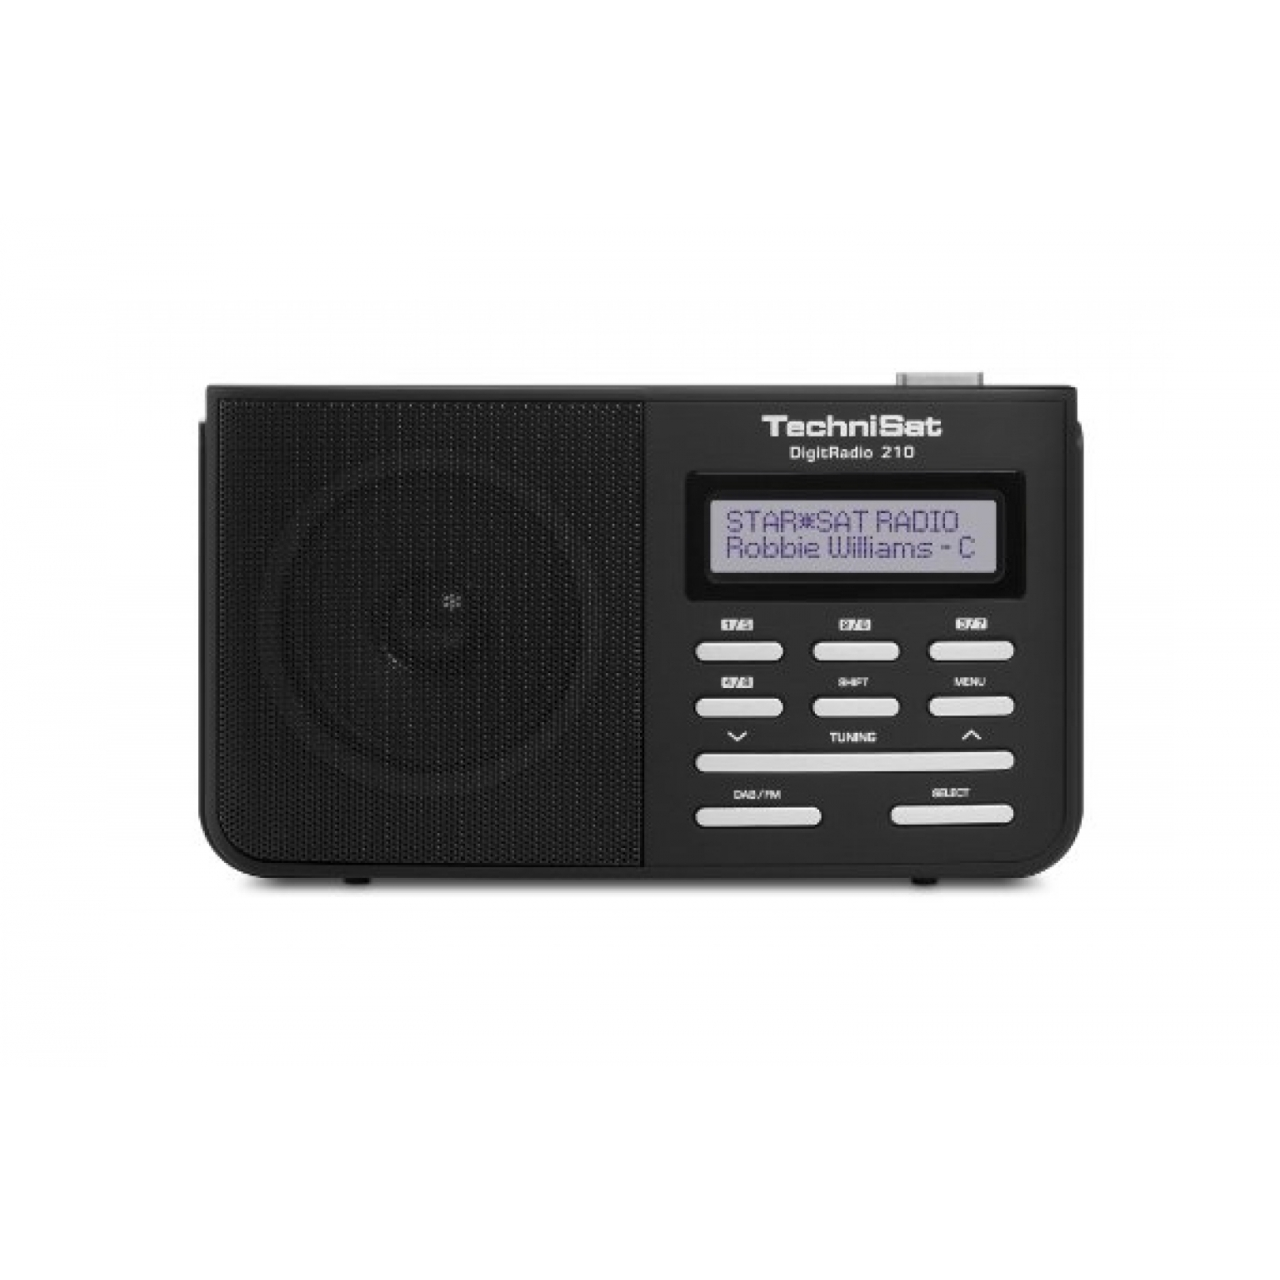 technisat digitradio 210 tragbares dab digitalradio test. Black Bedroom Furniture Sets. Home Design Ideas